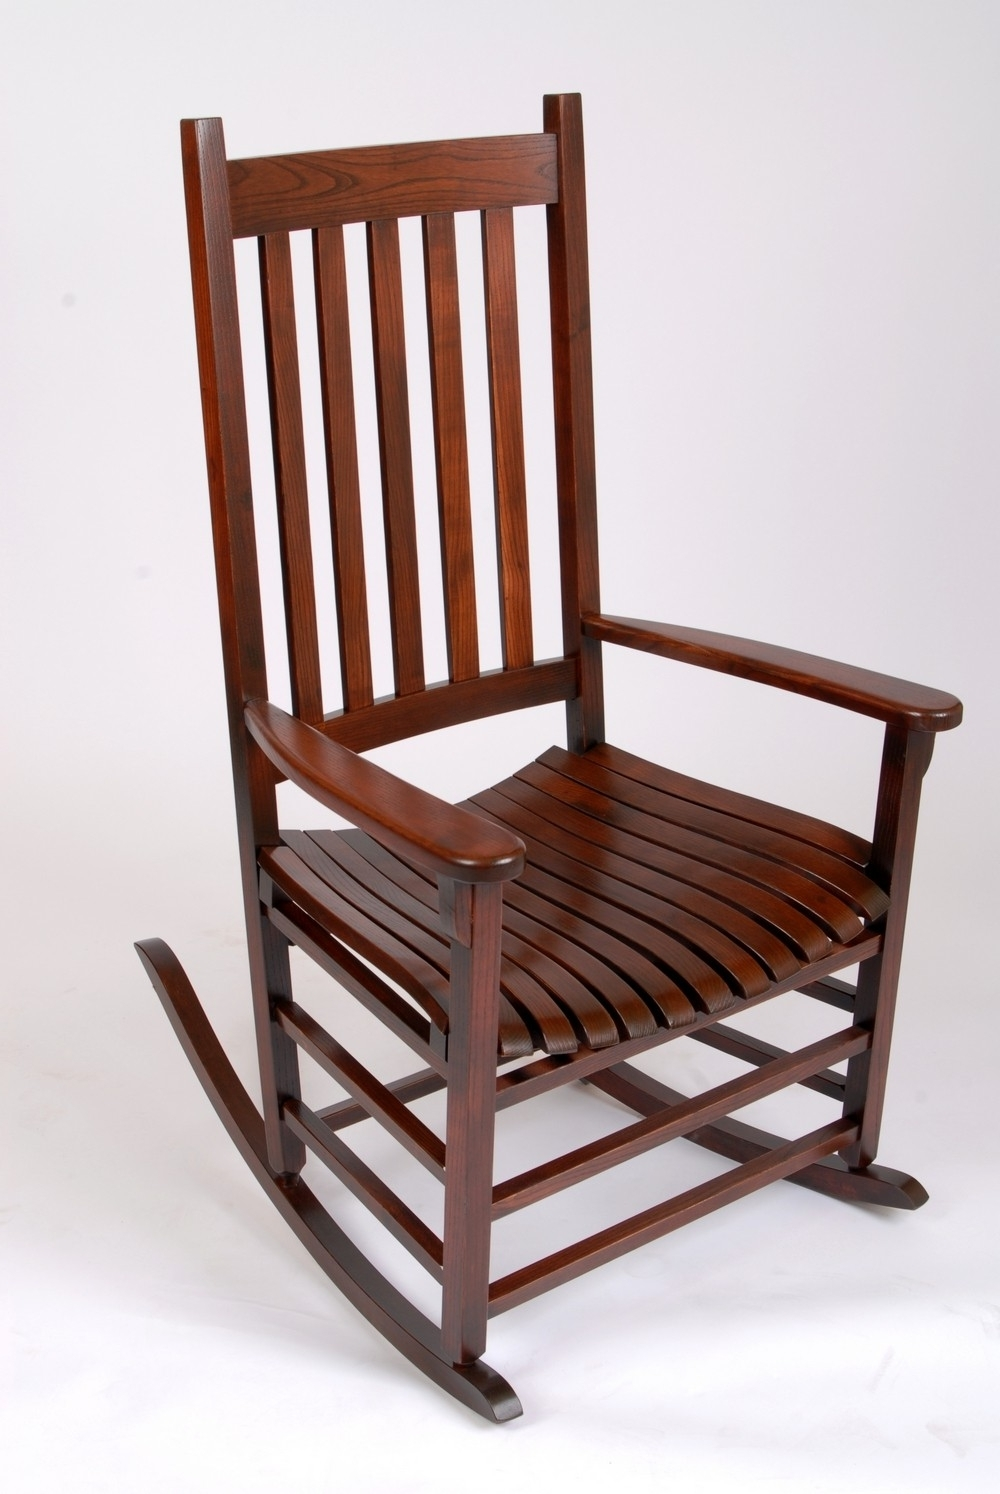 Sensational Inspiration Ideas Old Style Wooden Rocking Chair 68 Throughout Most Popular Old Fashioned Rocking Chairs (View 16 of 20)